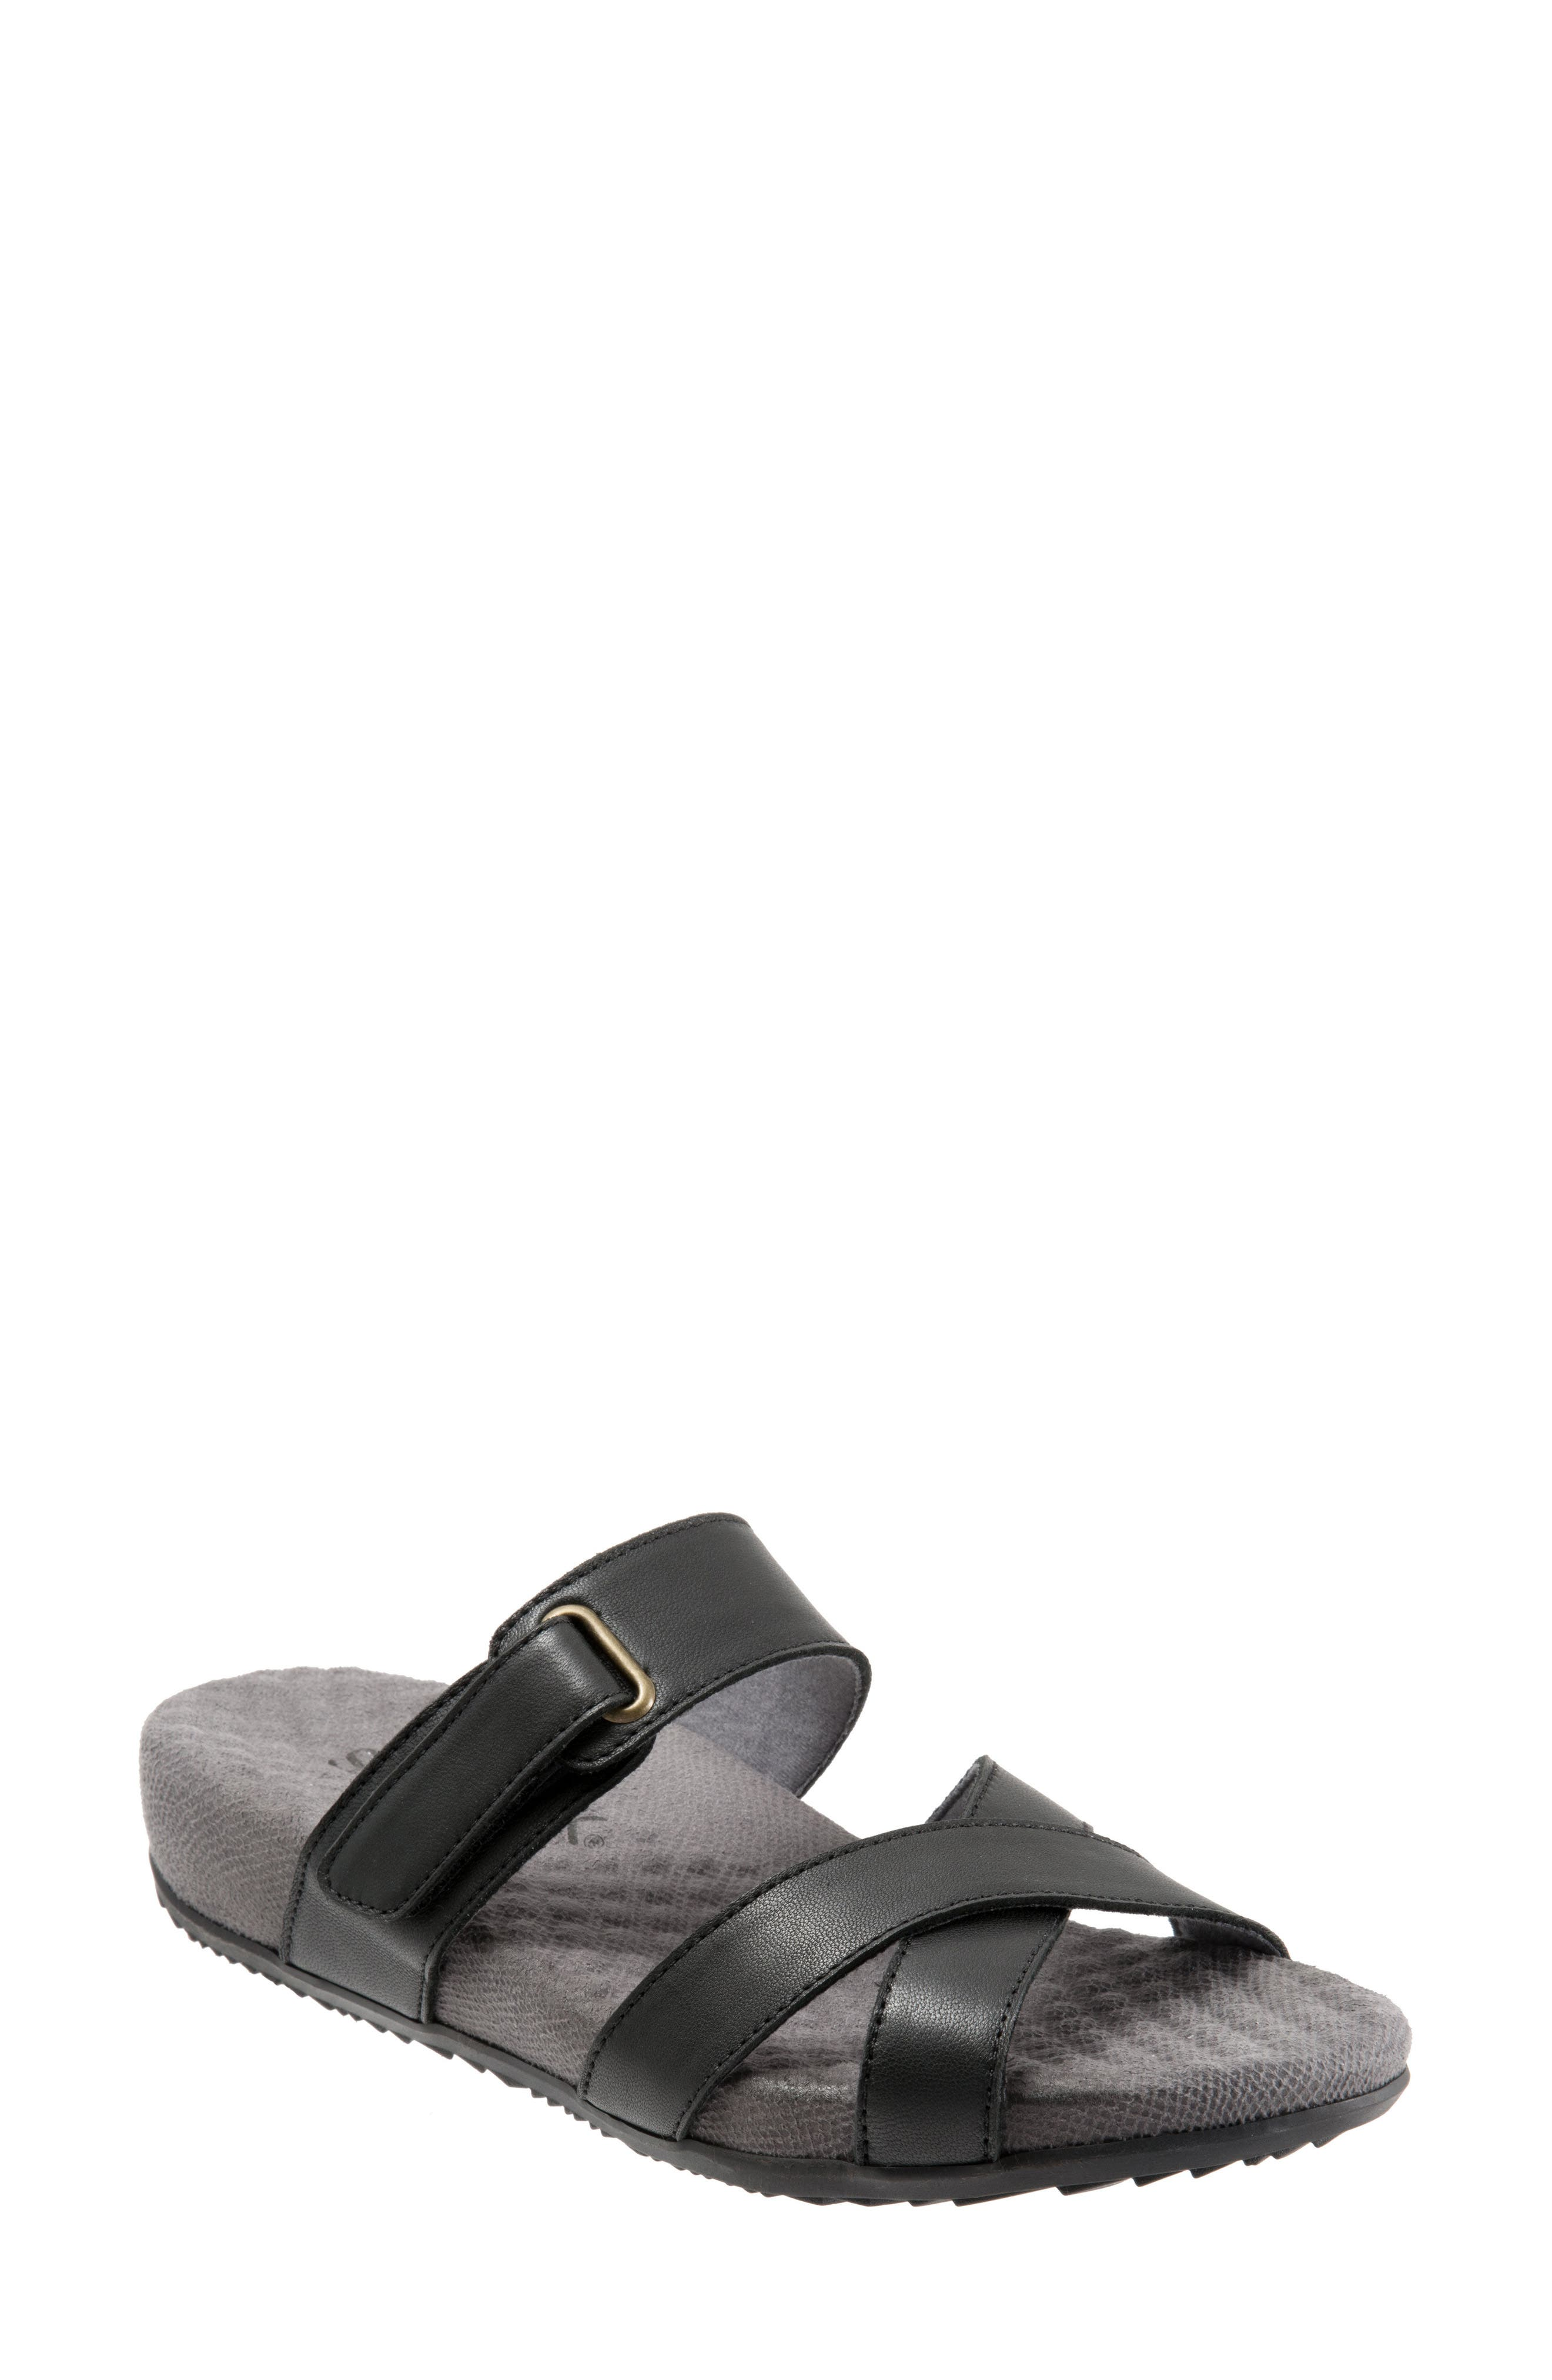 Brimley Sandal,                             Main thumbnail 1, color,                             Black Leather